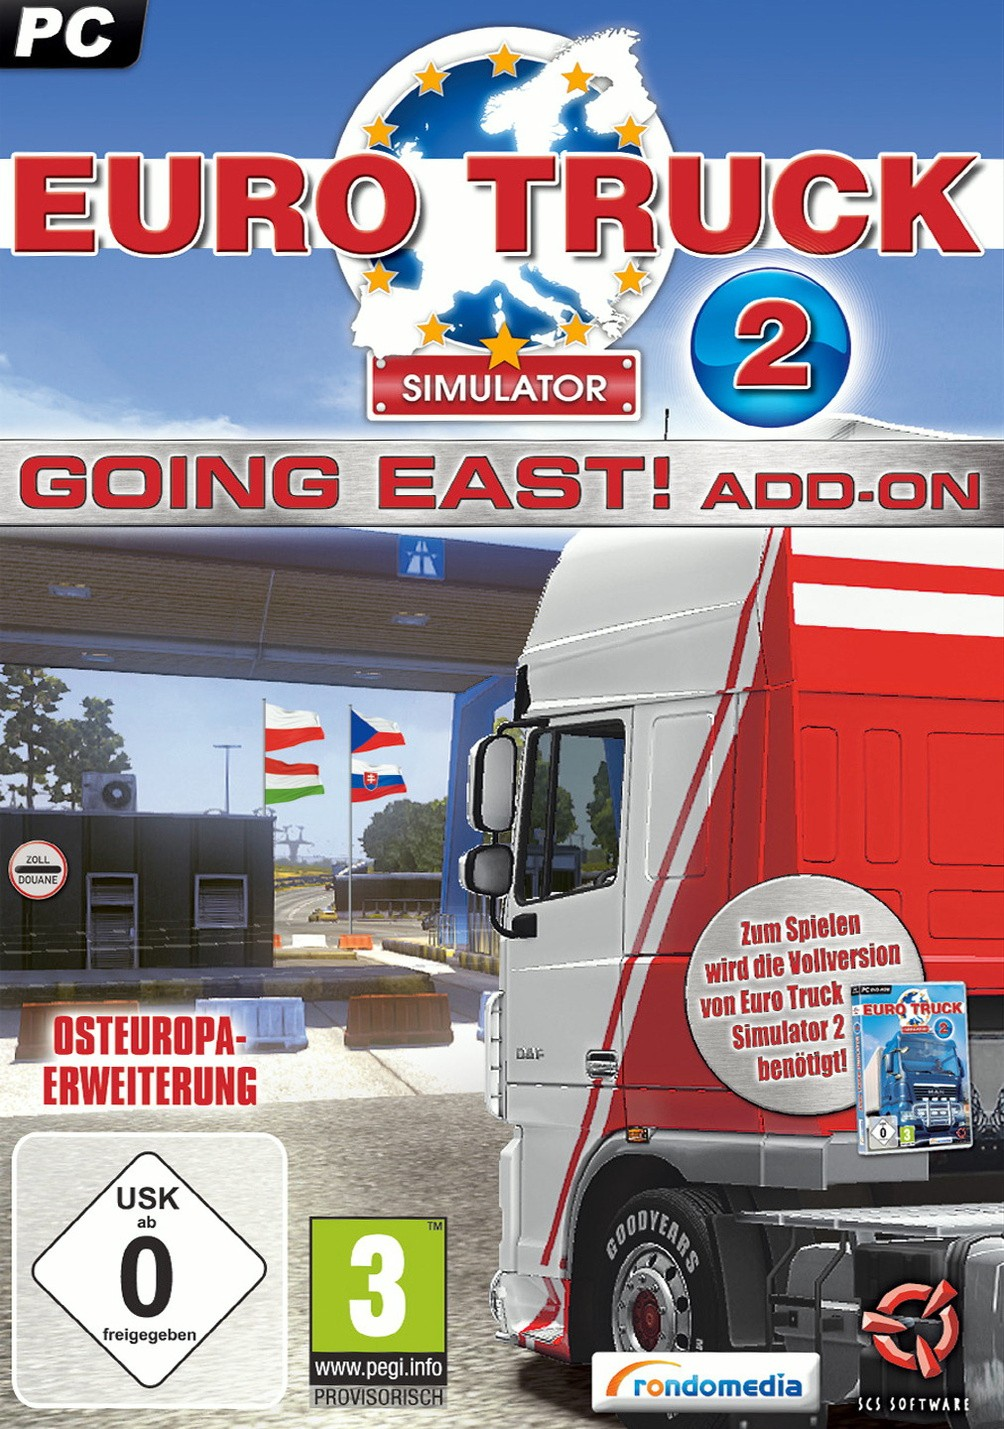 euro-truck-simulator-2-going-east-add-on-pc_mbd_3